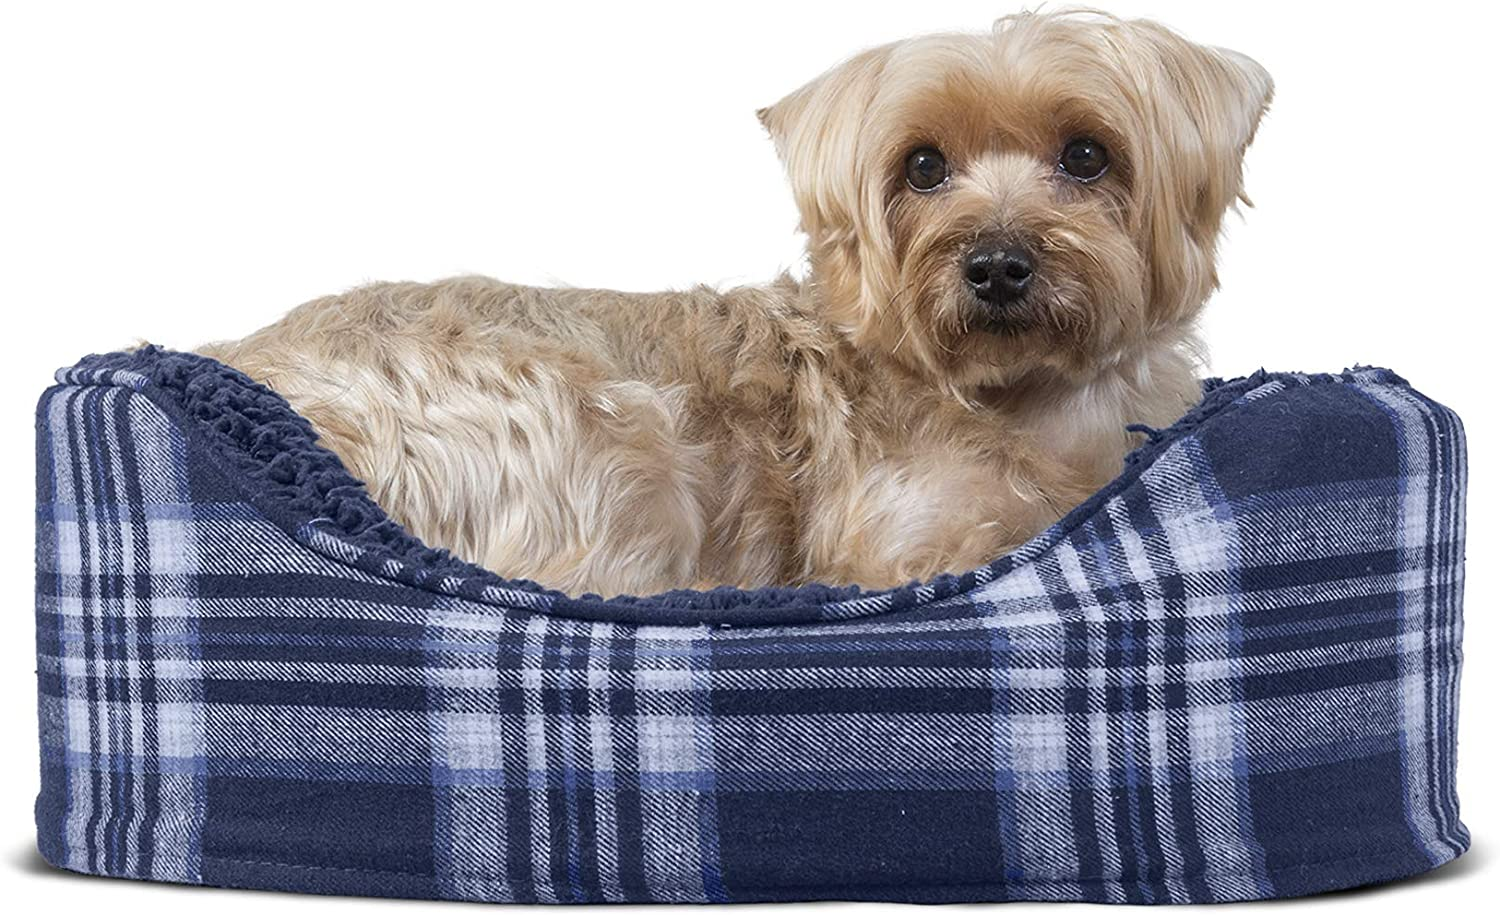 Furhaven Pet - Traditional Orthopedic Foam Mattress Dog Bed and Calming Anti-Anxiety Round Oval Nest Cuddler Dog Bed for Dogs and Cats - Multiple Sizes, Styles, and Colors.